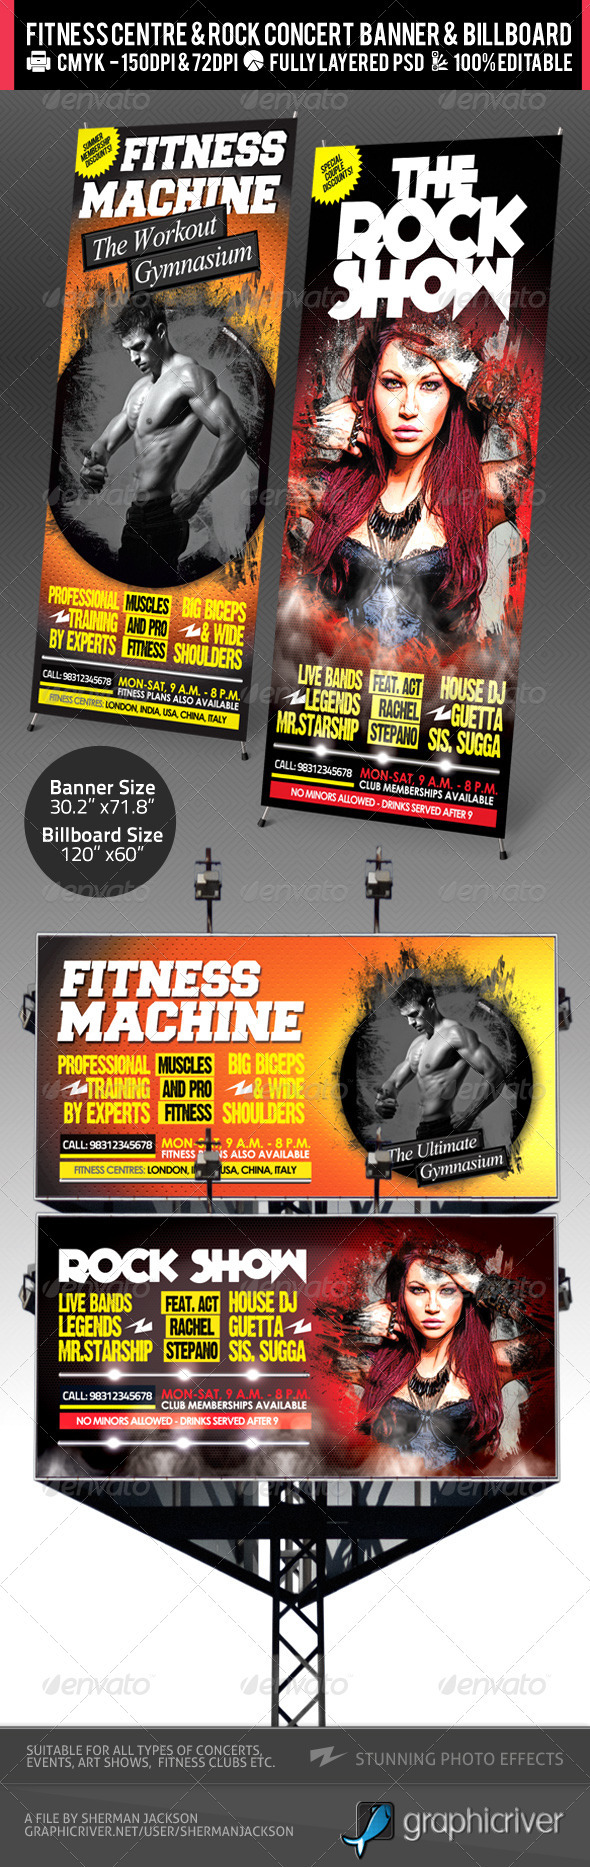 GraphicRiver Rock Concert & Fitness Club Billboard&Banner PSD 2419020